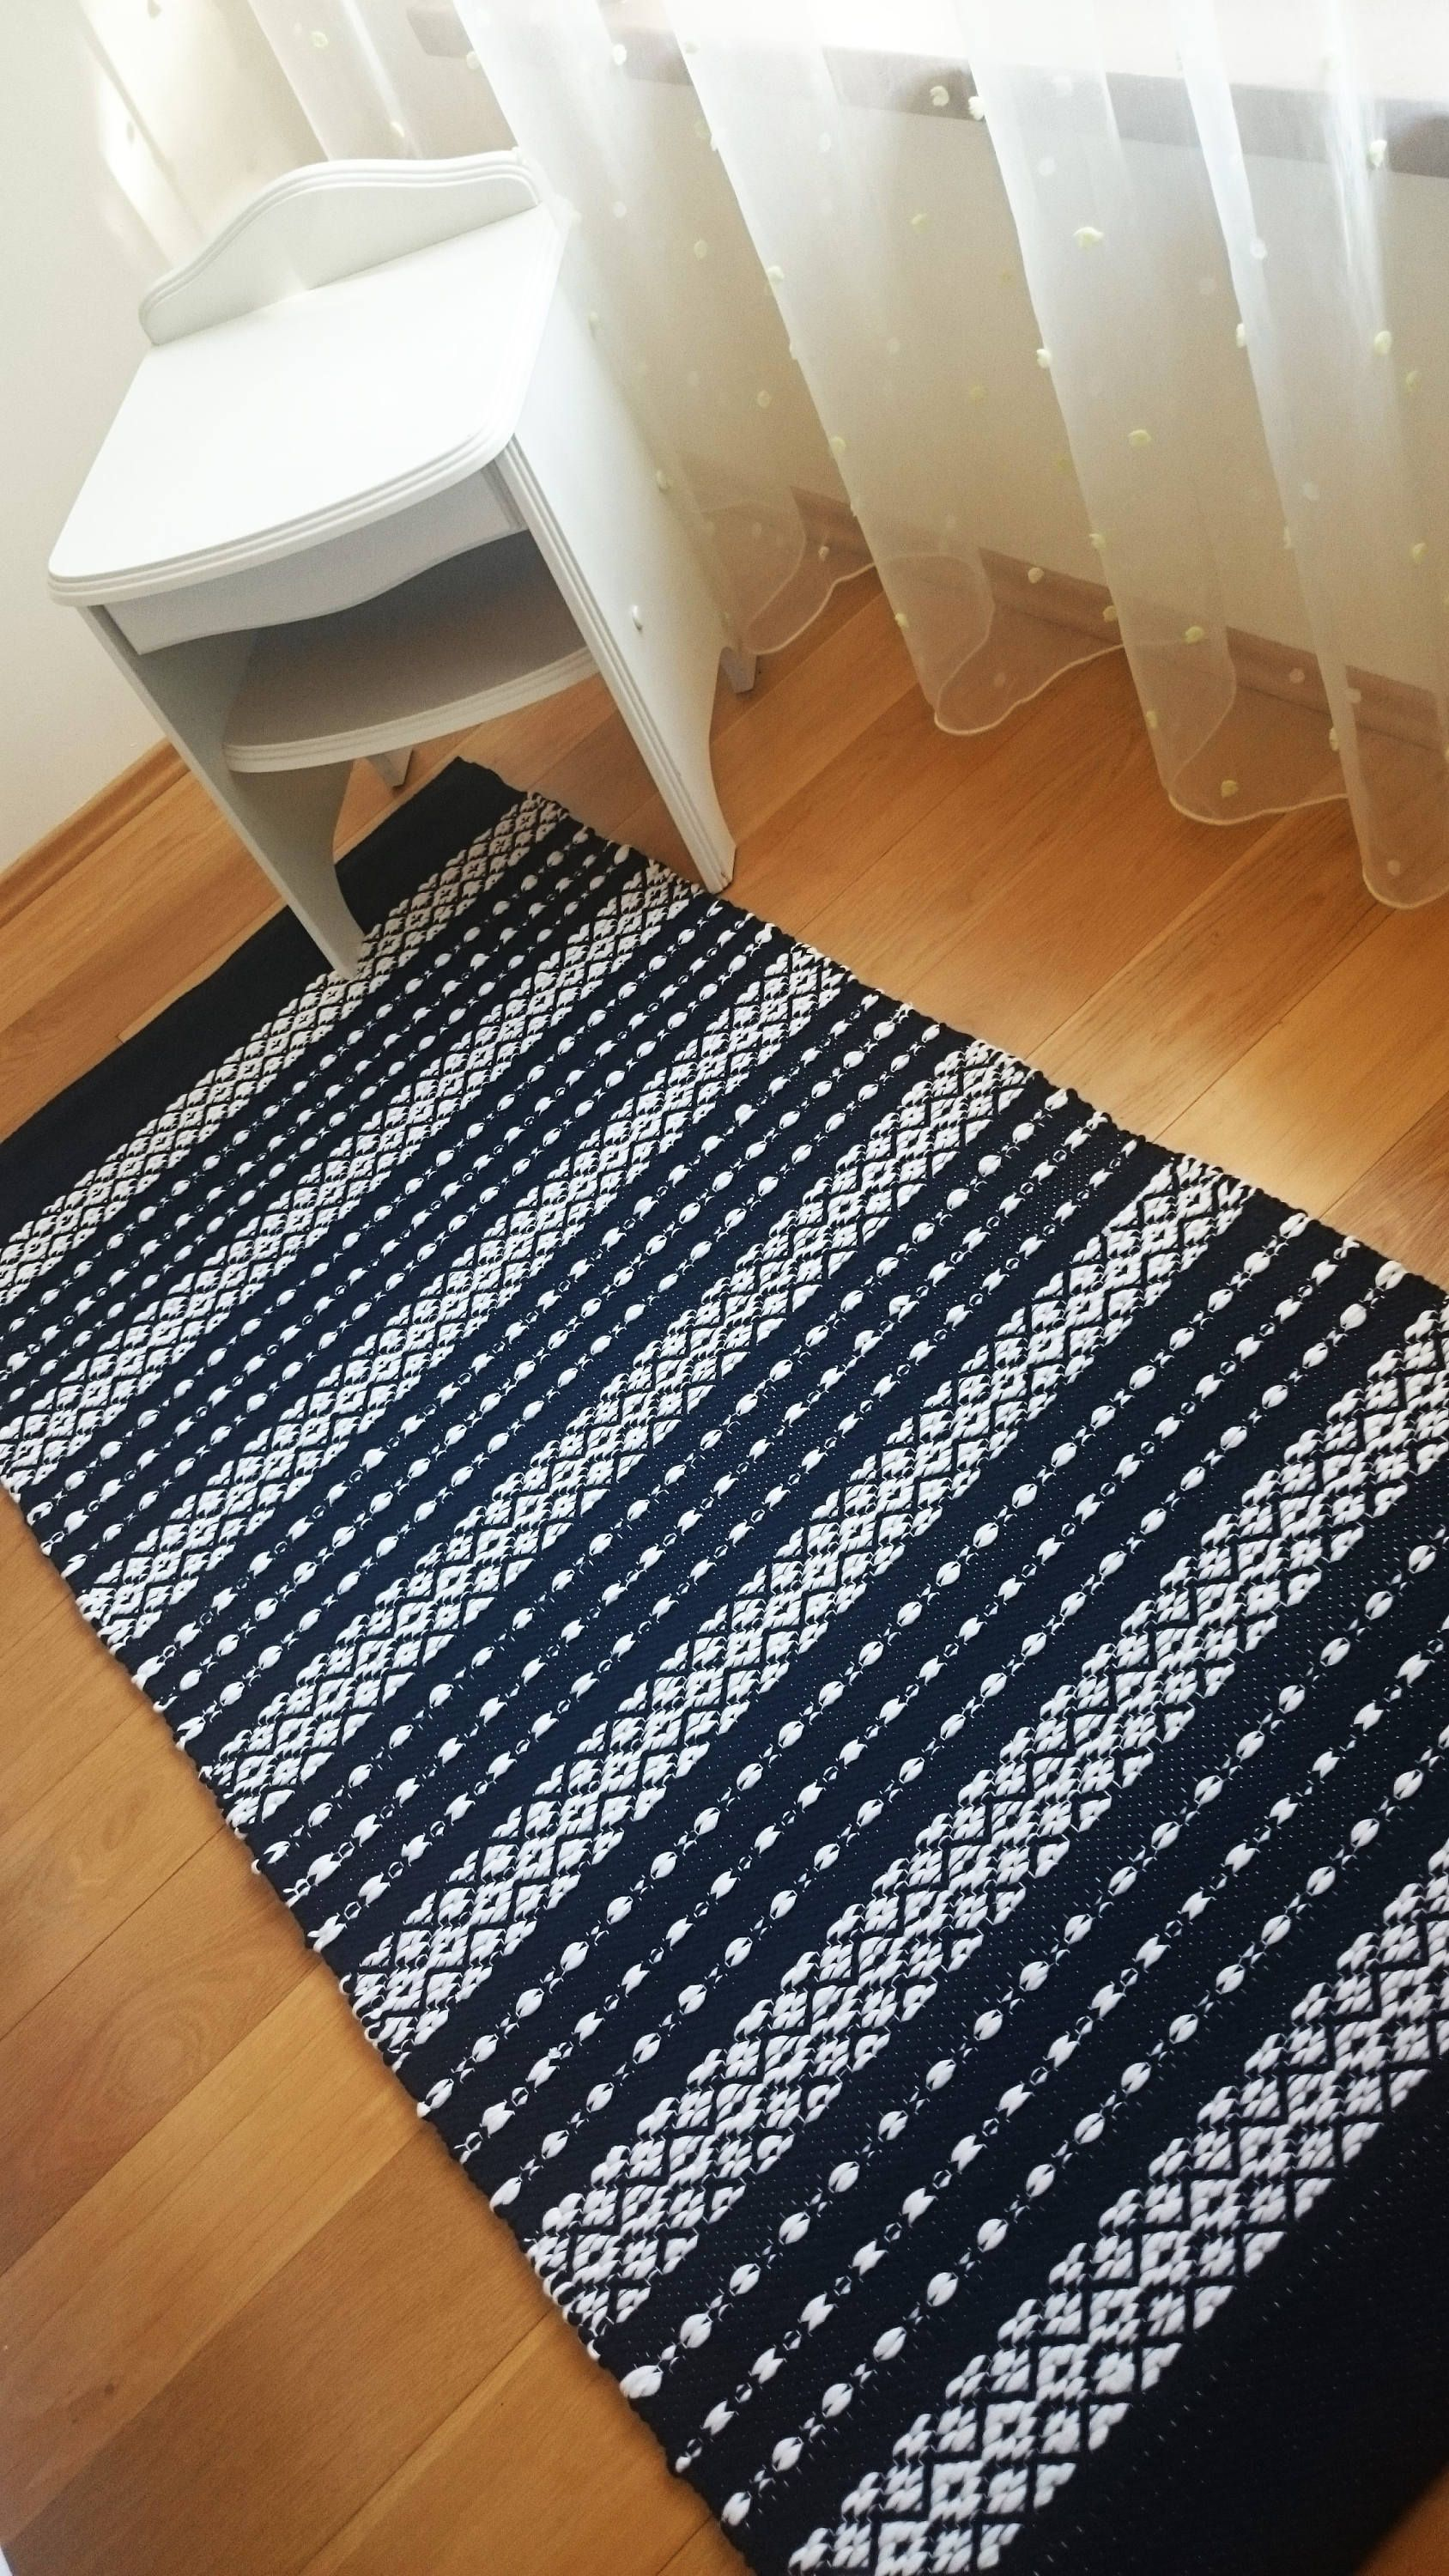 Items Similar To Scandinavian Striped Rug Navy Blue And White Floor Runner Machine Washable Cotton Carpet Handmade On The Loom Ready To Ship On Etsy Cotton Carpet Striped Rug White Floors